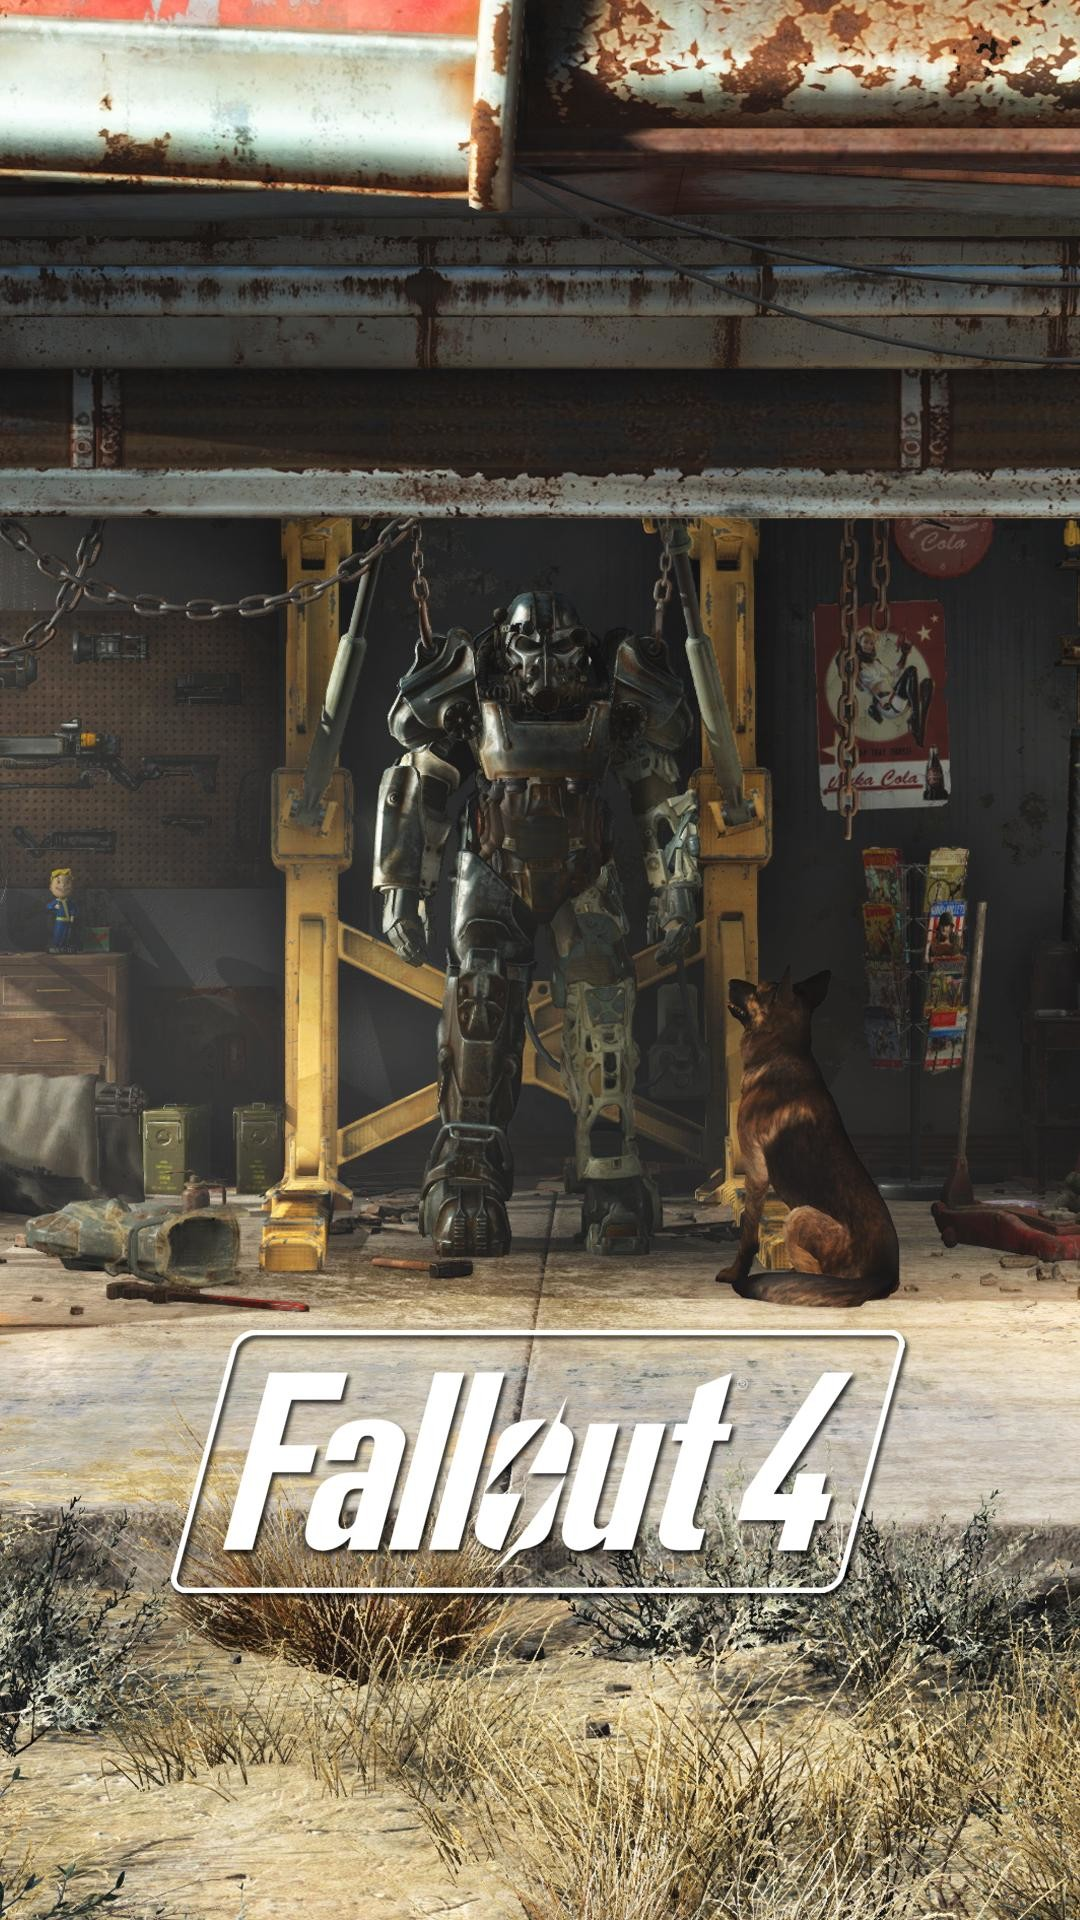 I made some Fallout 4 lock screen wallpapers from stills